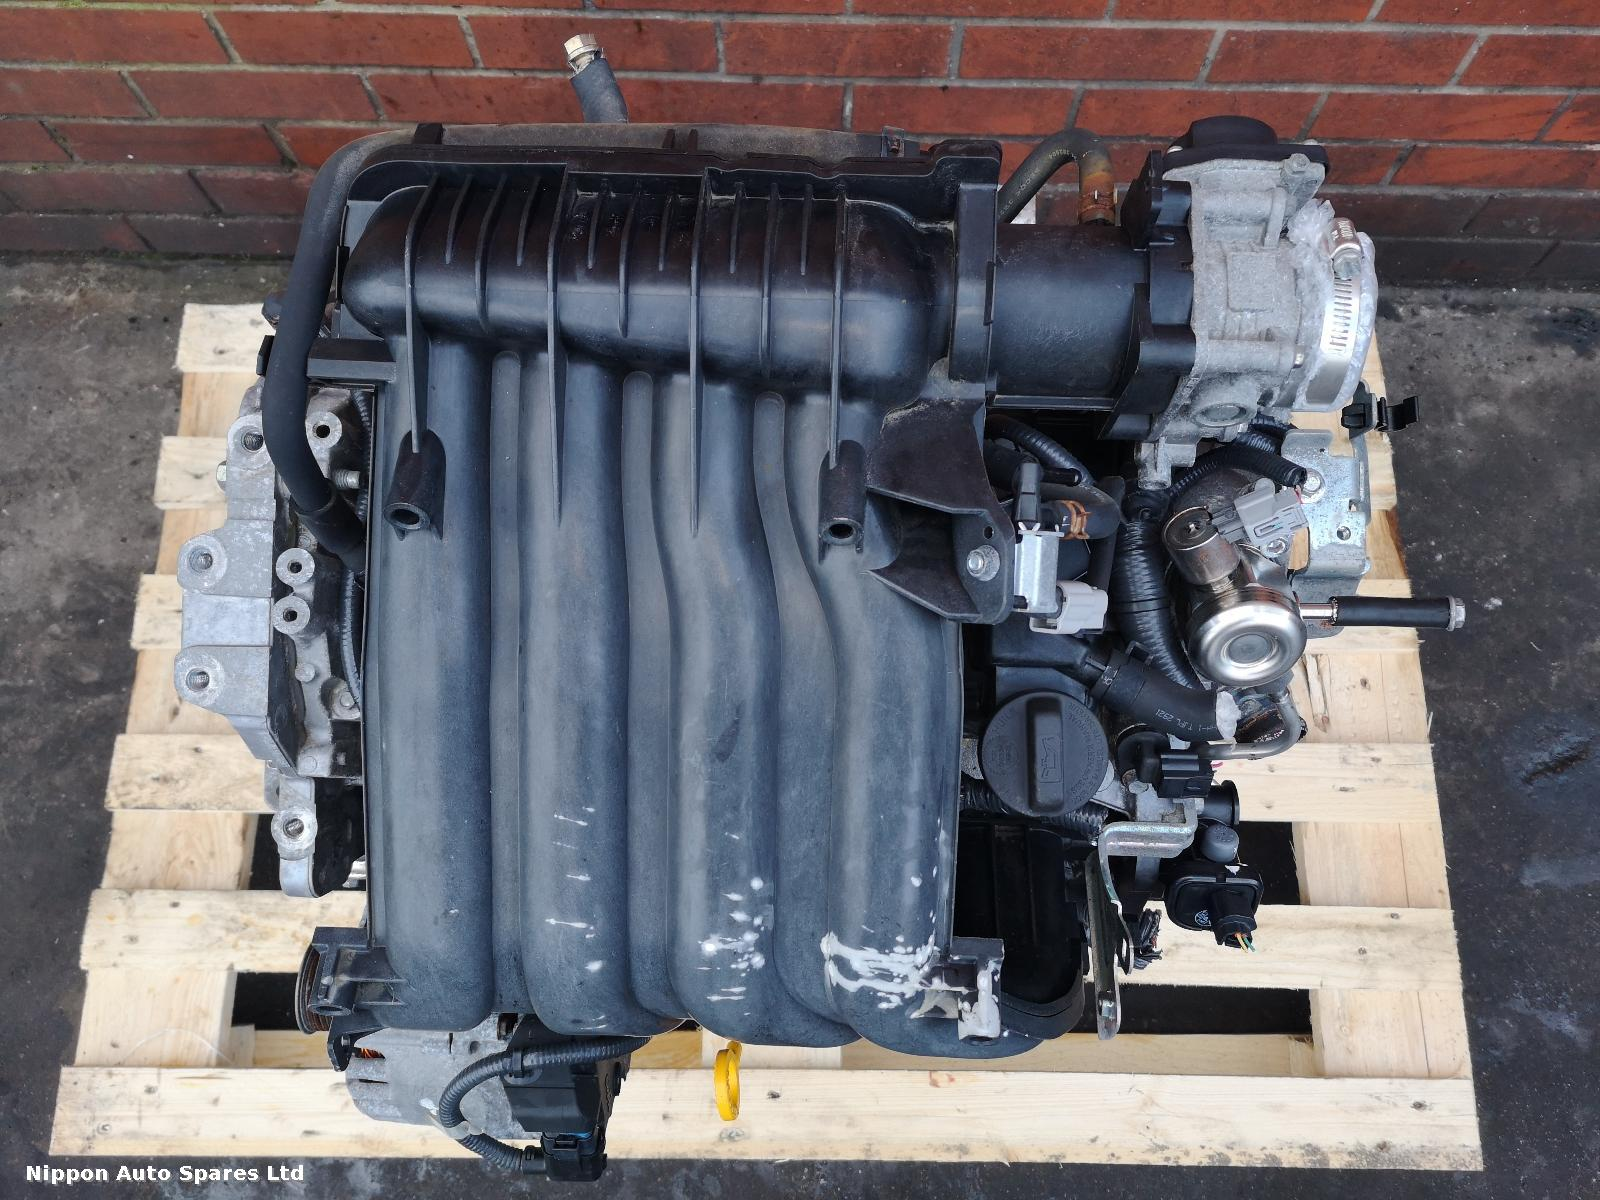 Nissan SERENA Engine MR20-DD WILL NOT FIT OLDER VERSIONS THIS IS WITH HIGH PRESSURE PUMP : 53033